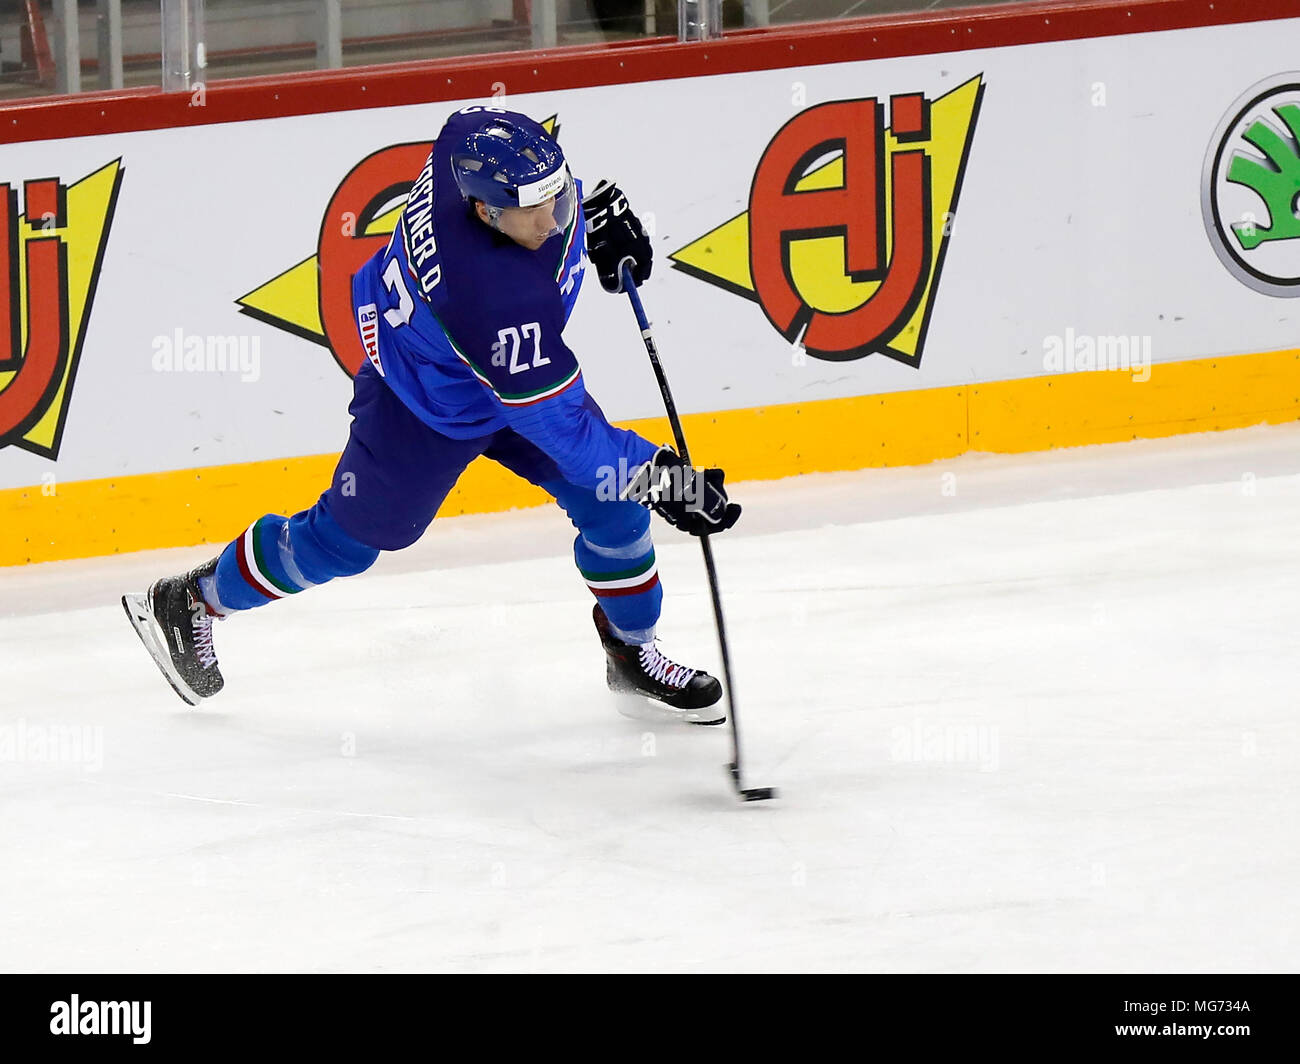 Budapest, Hungary, 27 April 2018.  Diego Kostner of Italy shoots on goal during the 2018 IIHF Ice Hockey World Championship Division I Group A match between Italy and Great Britain at Laszlo Papp Budapest Sports Arena on April 27, 2018 in Budapest, Hungary. Credit: Laszlo Szirtesi/Alamy Live News - Stock Image